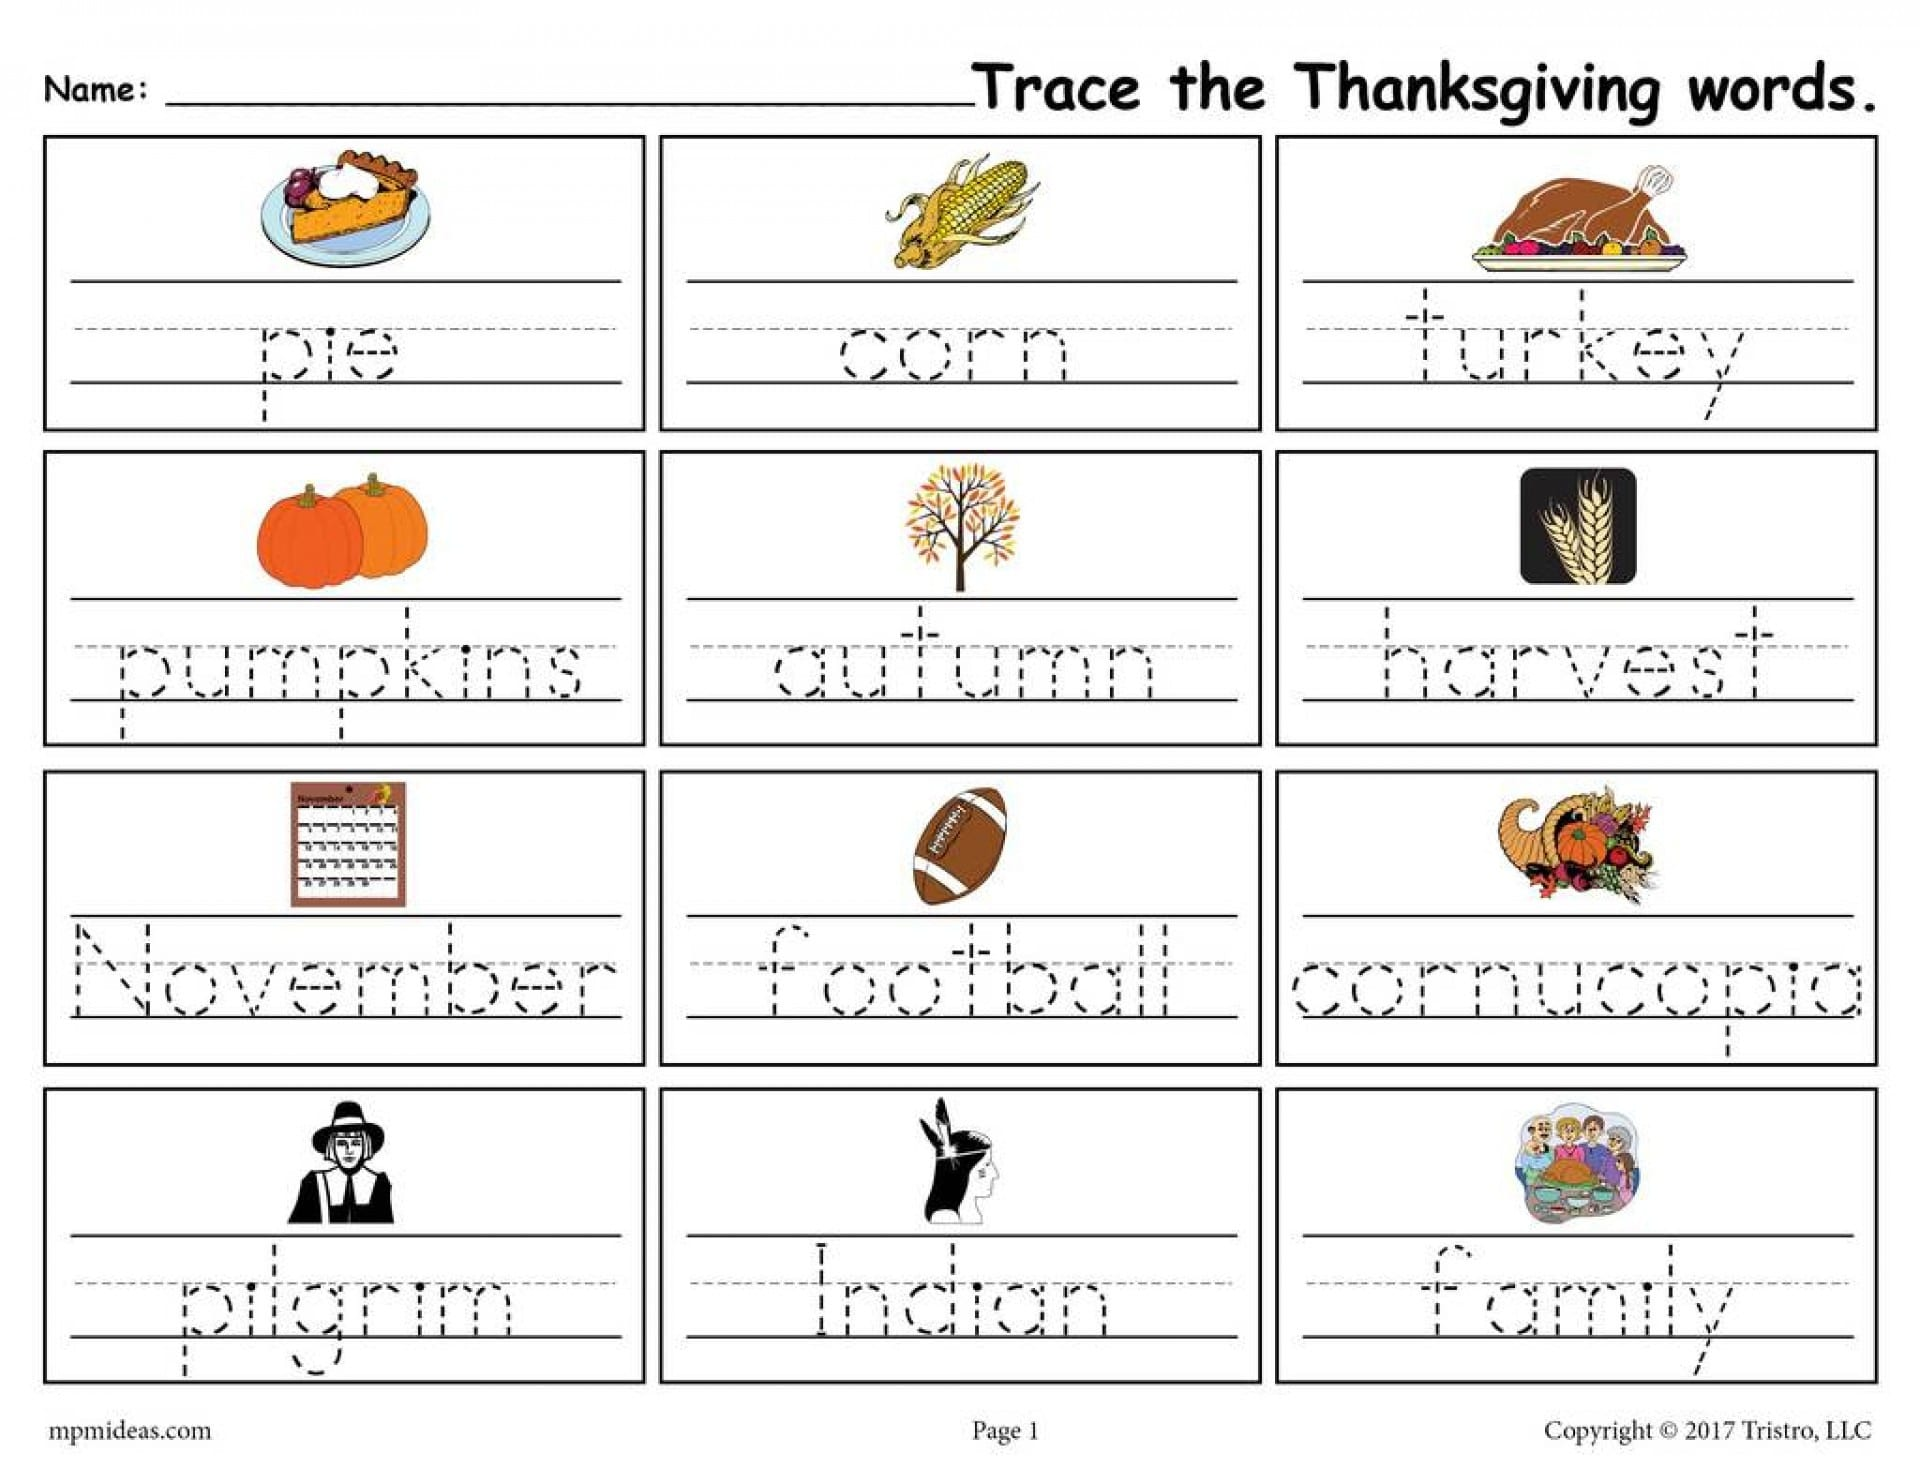 005 Free Printable Word Tracing Worksheets With Thanksgiving